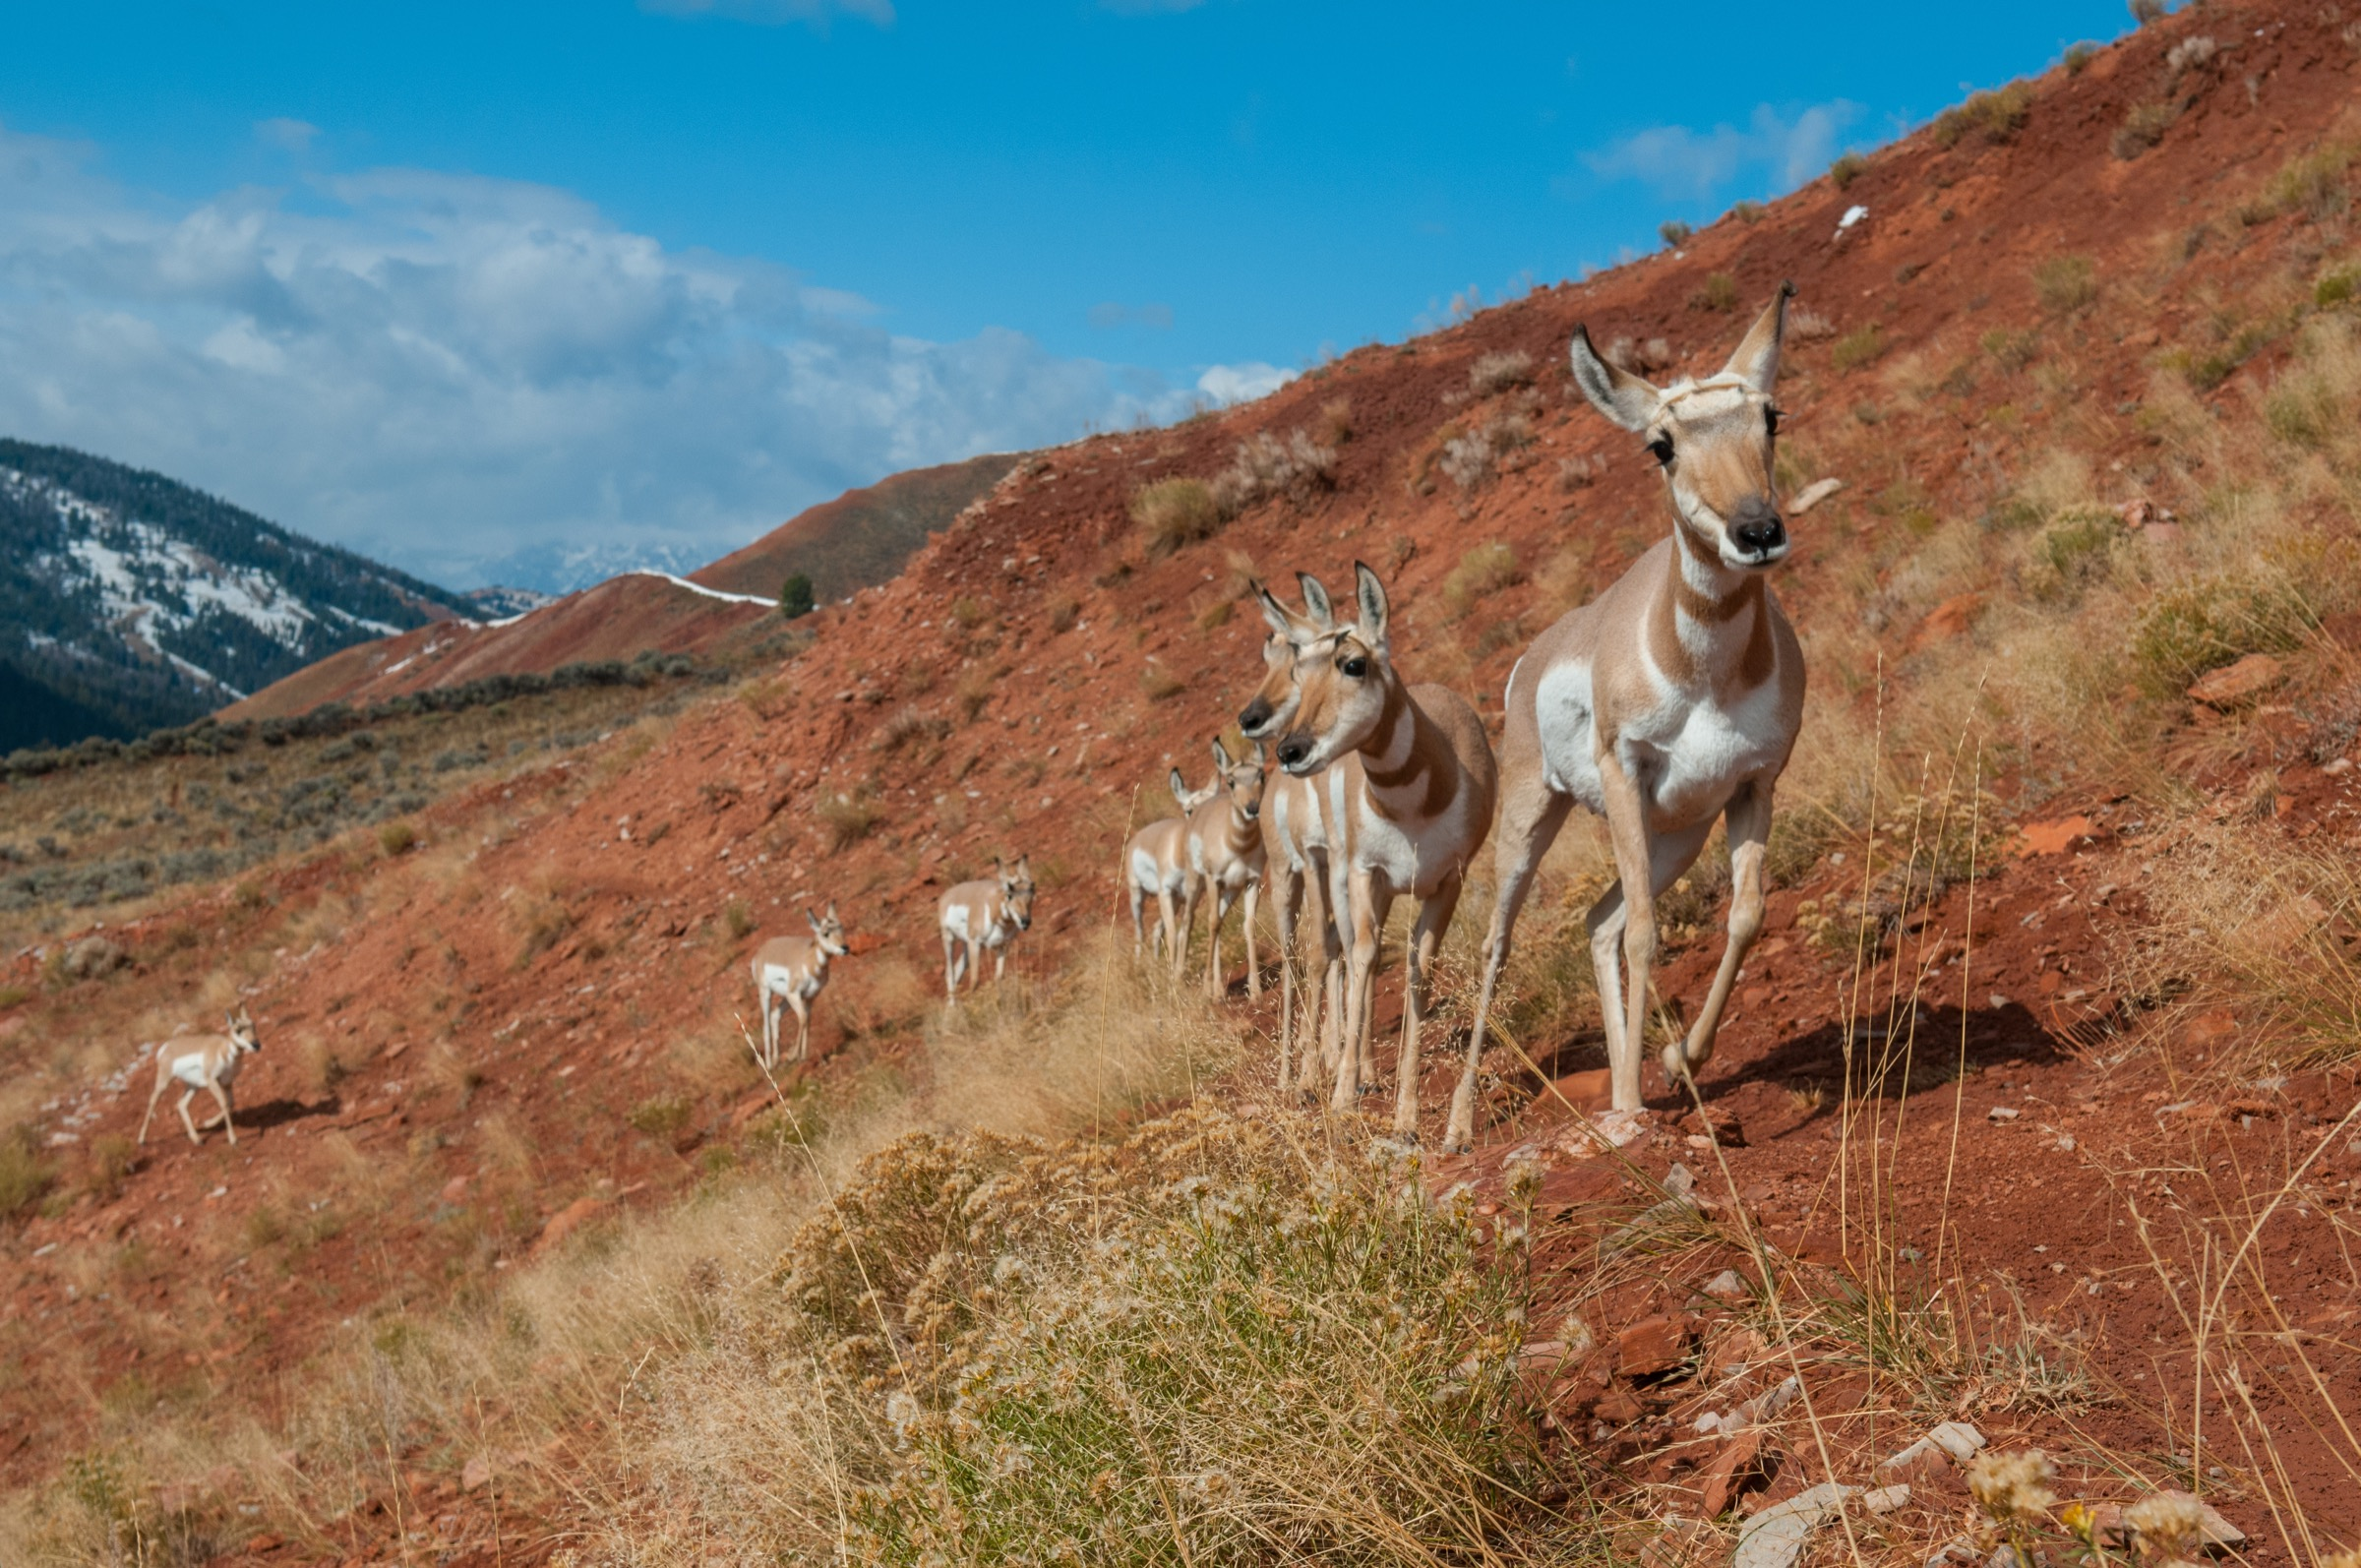 Pronghorn antelope in the red hills of western Wyoming.